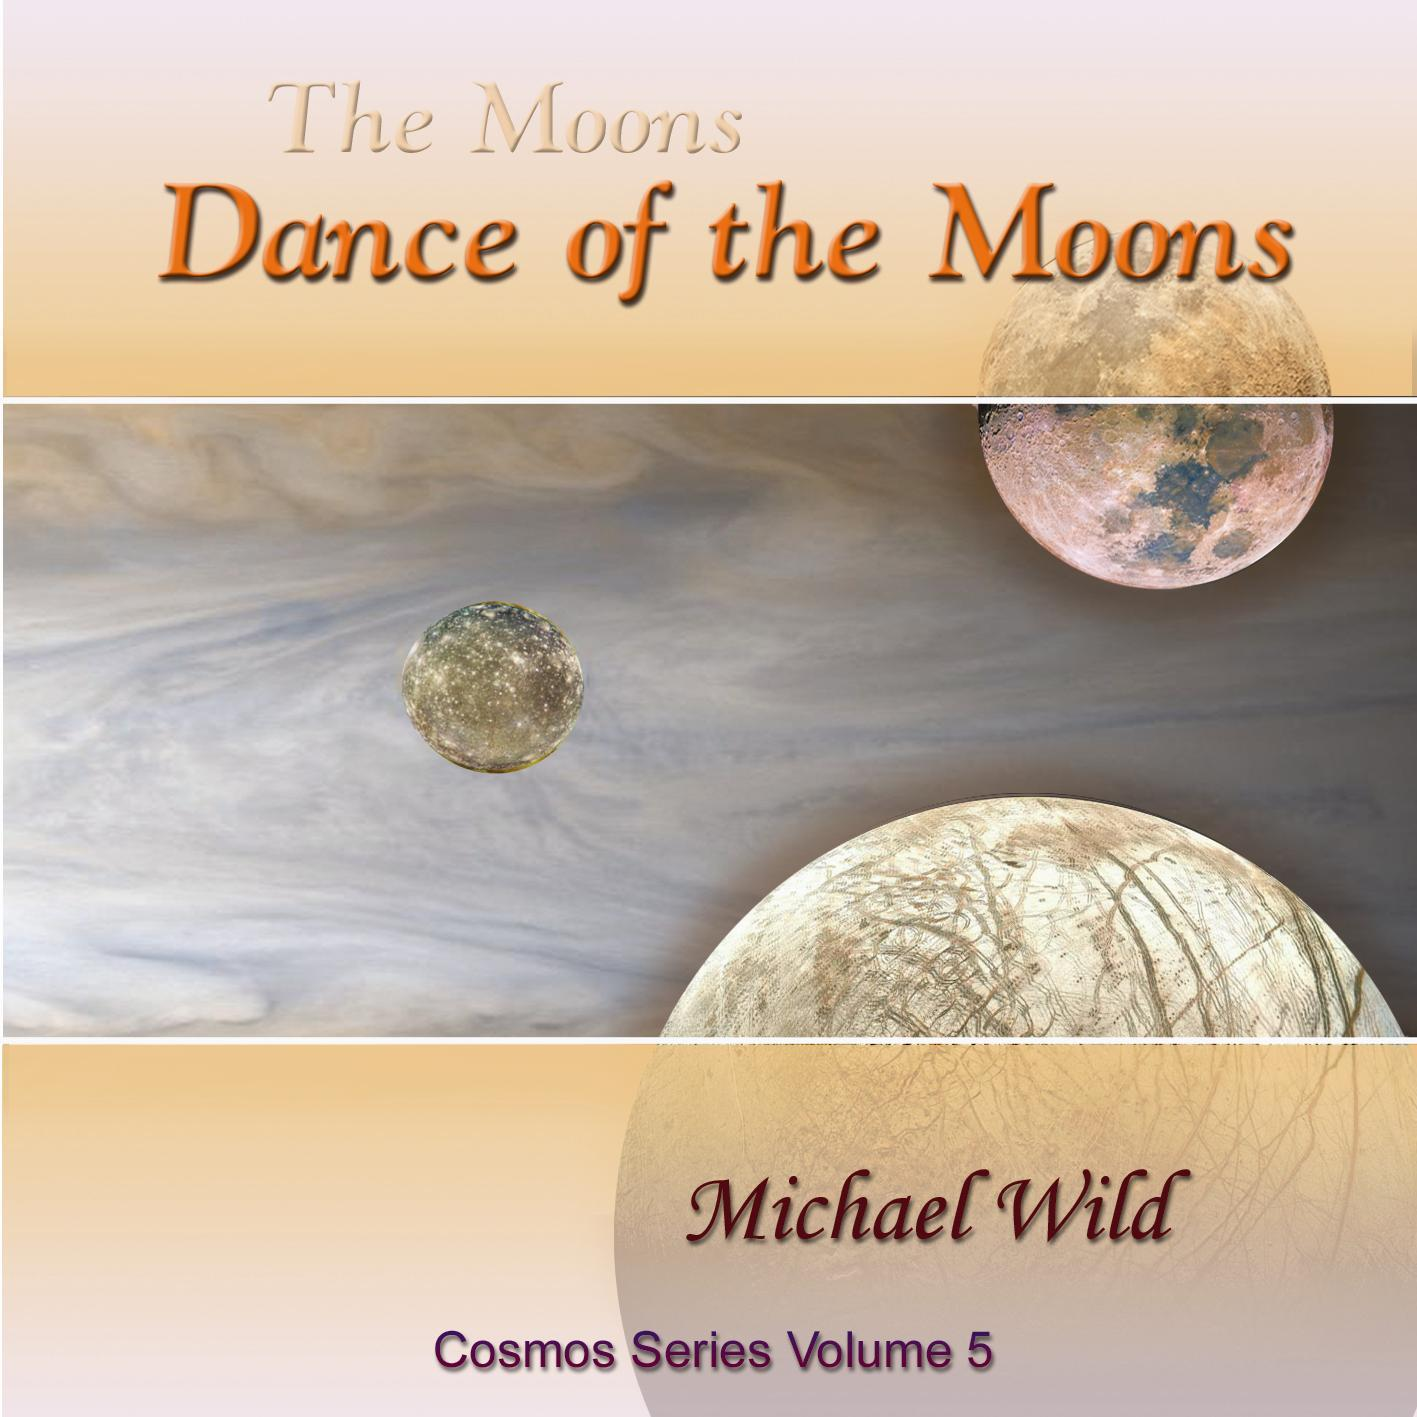 Dance of the Moons (2008)